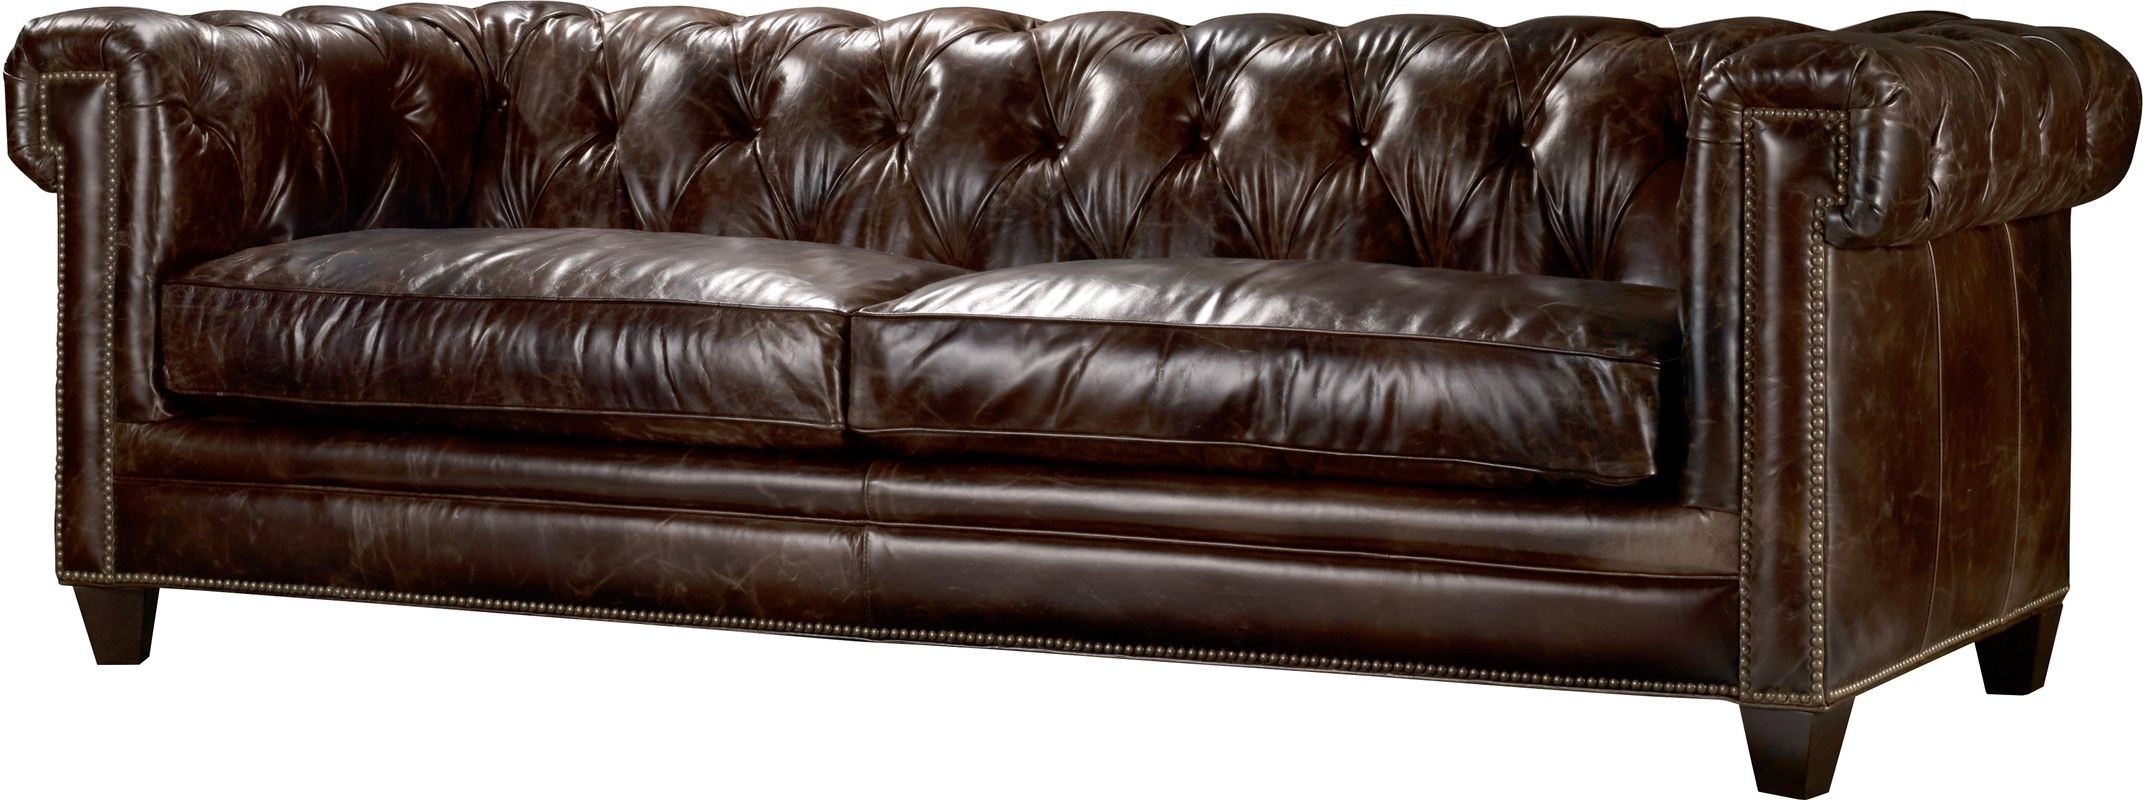 Leather Chesterfield Sofas Regarding Most Current Hooker Furniture Imperial Regal Stationary Leather Chesterfield (View 4 of 20)